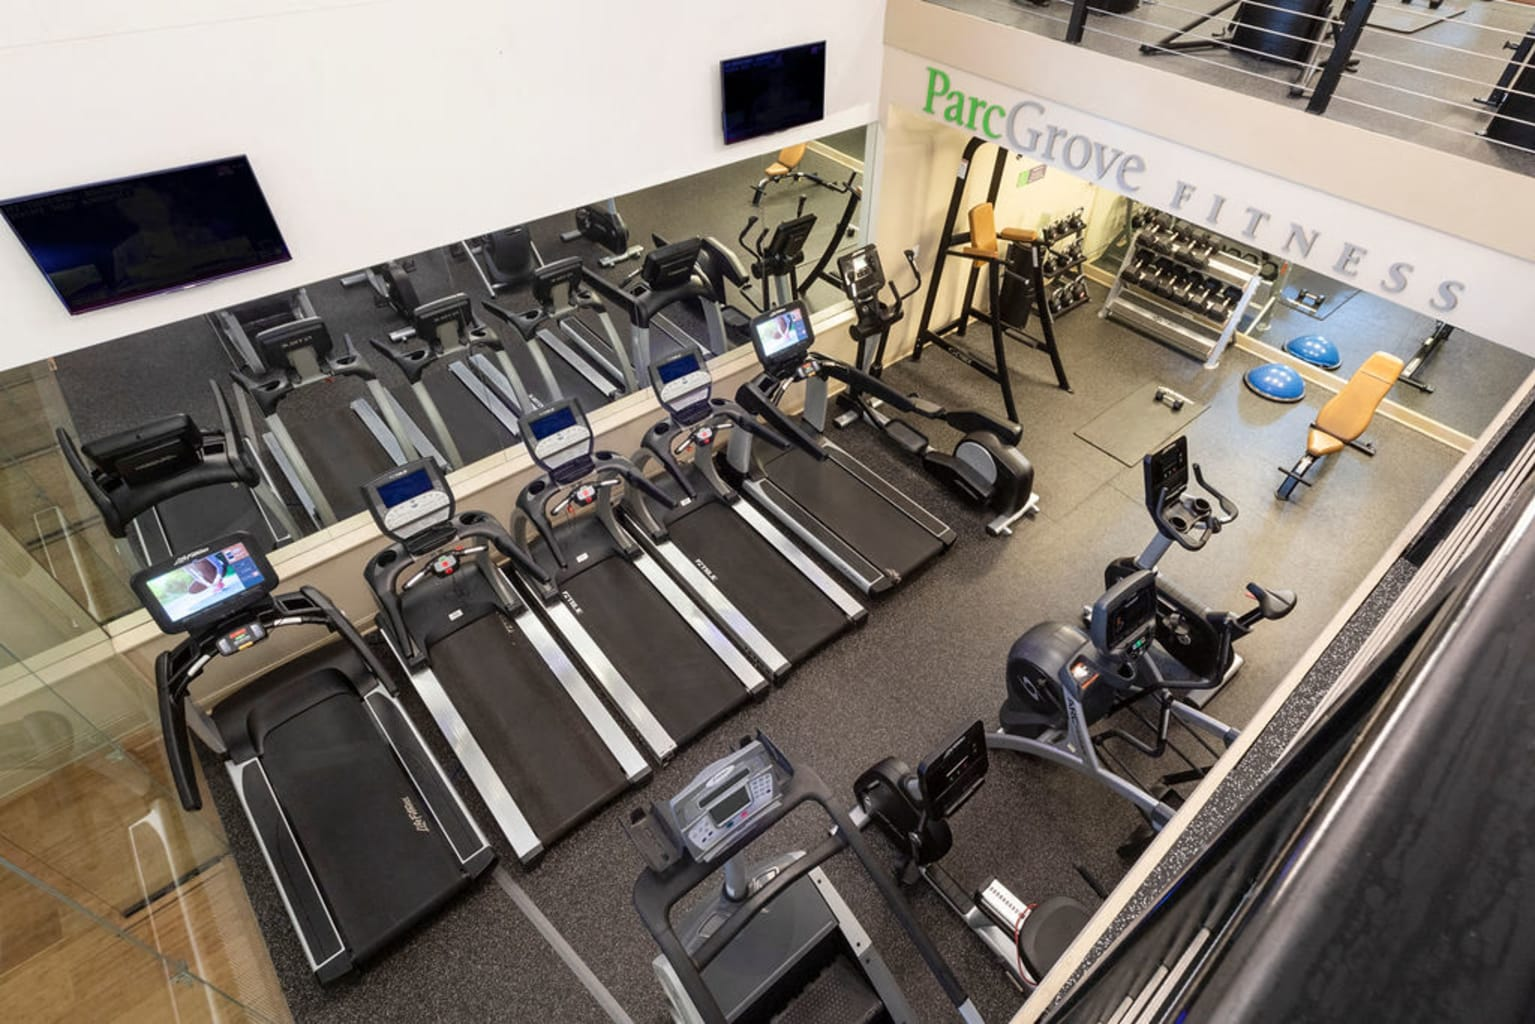 Aerial view of the treadmills in the fitness center at Sofi Parc Grove in Stamford, Connecticut